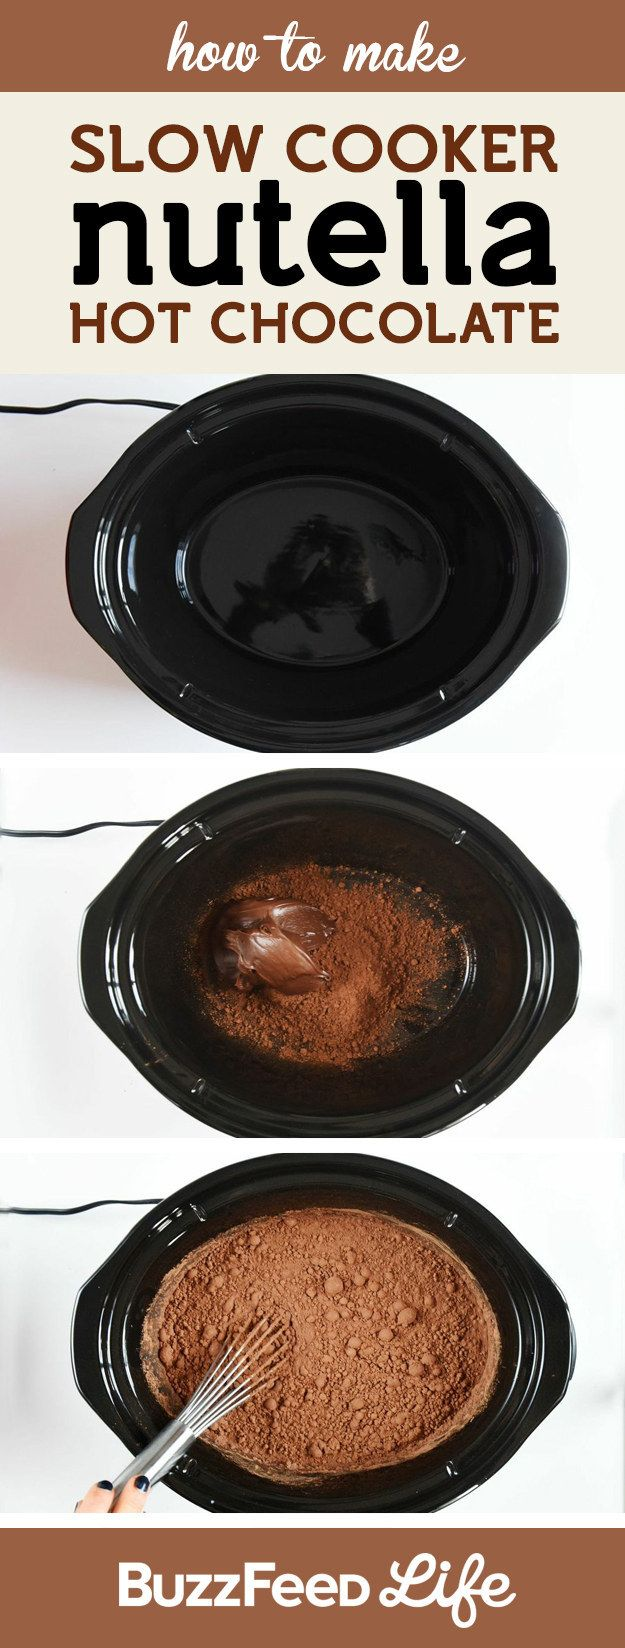 how to make chocolate without milk powder